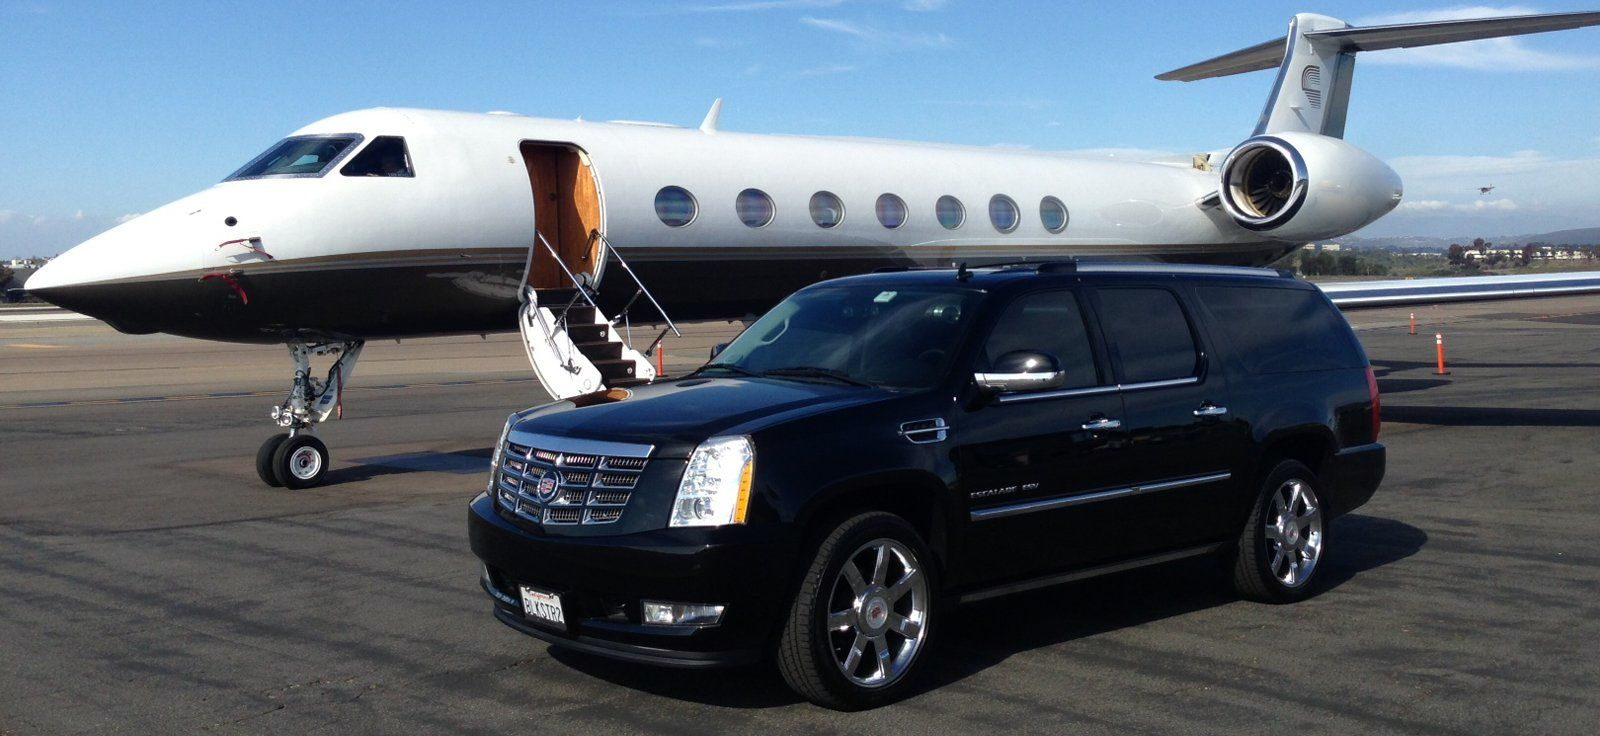 3 Reasons to Hire Airport Transportation Denver – Cyber Travel School